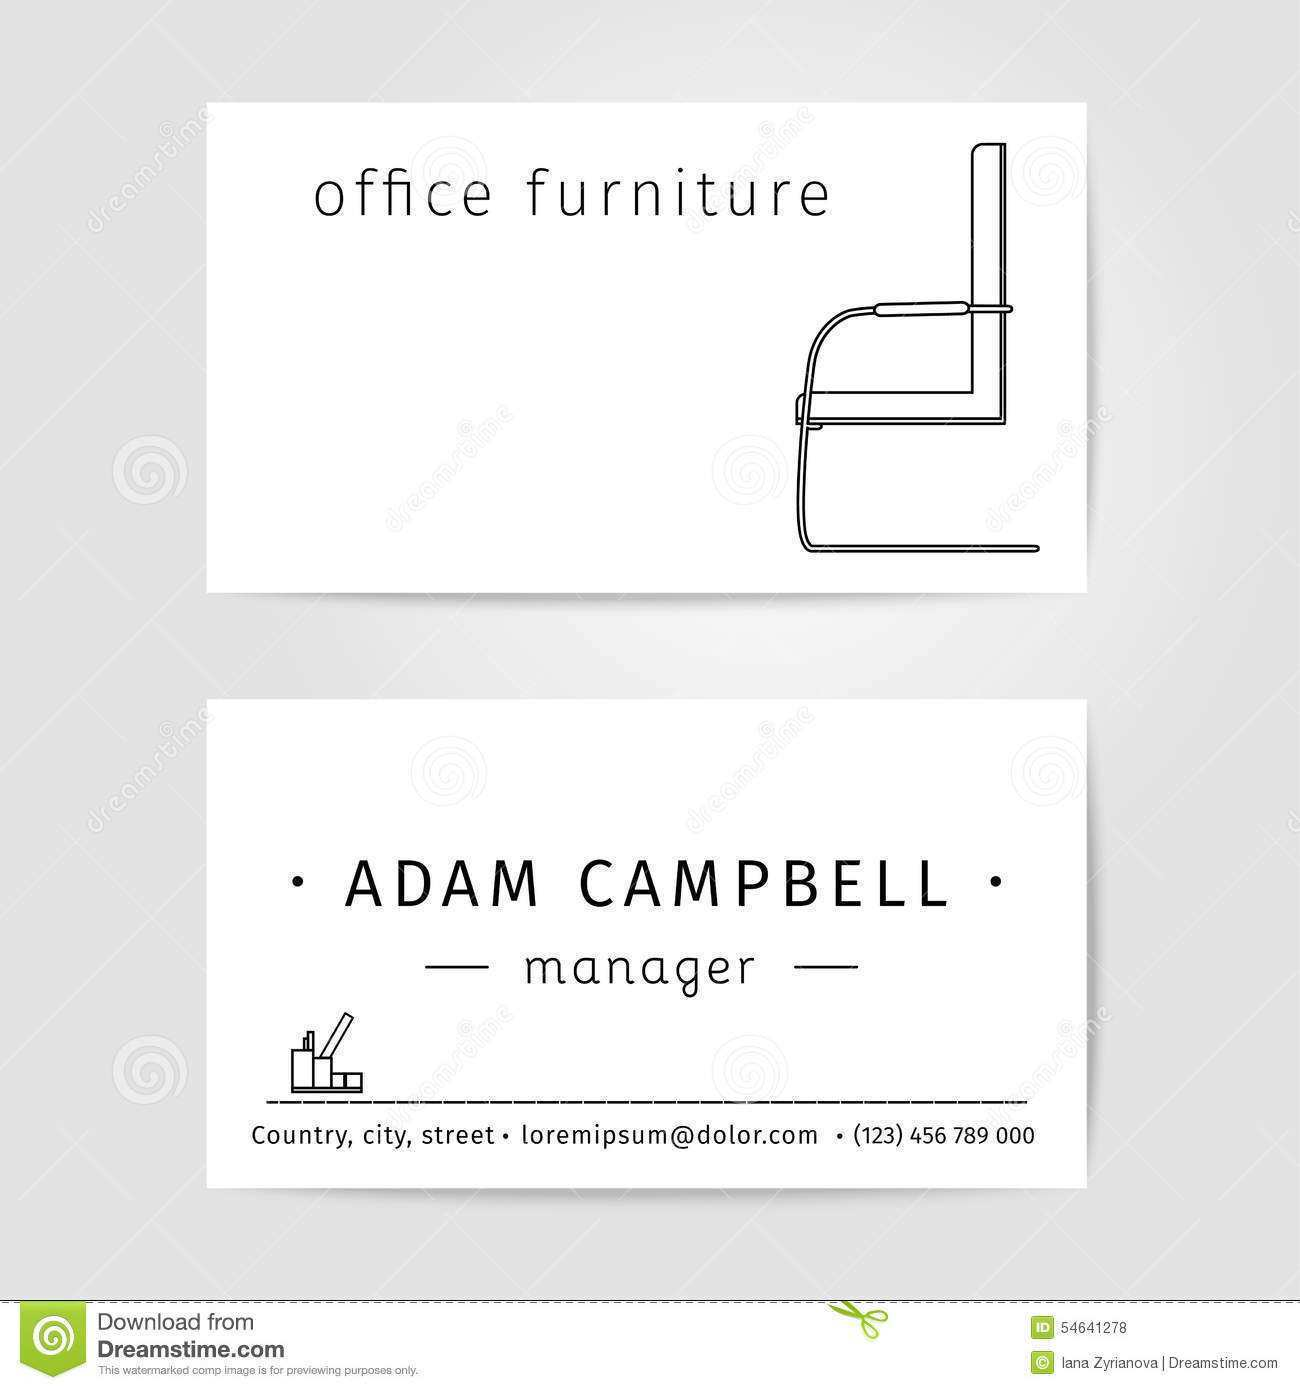 14 Online Avery Business Card Template Libreoffice by Avery Business Card Template Libreoffice